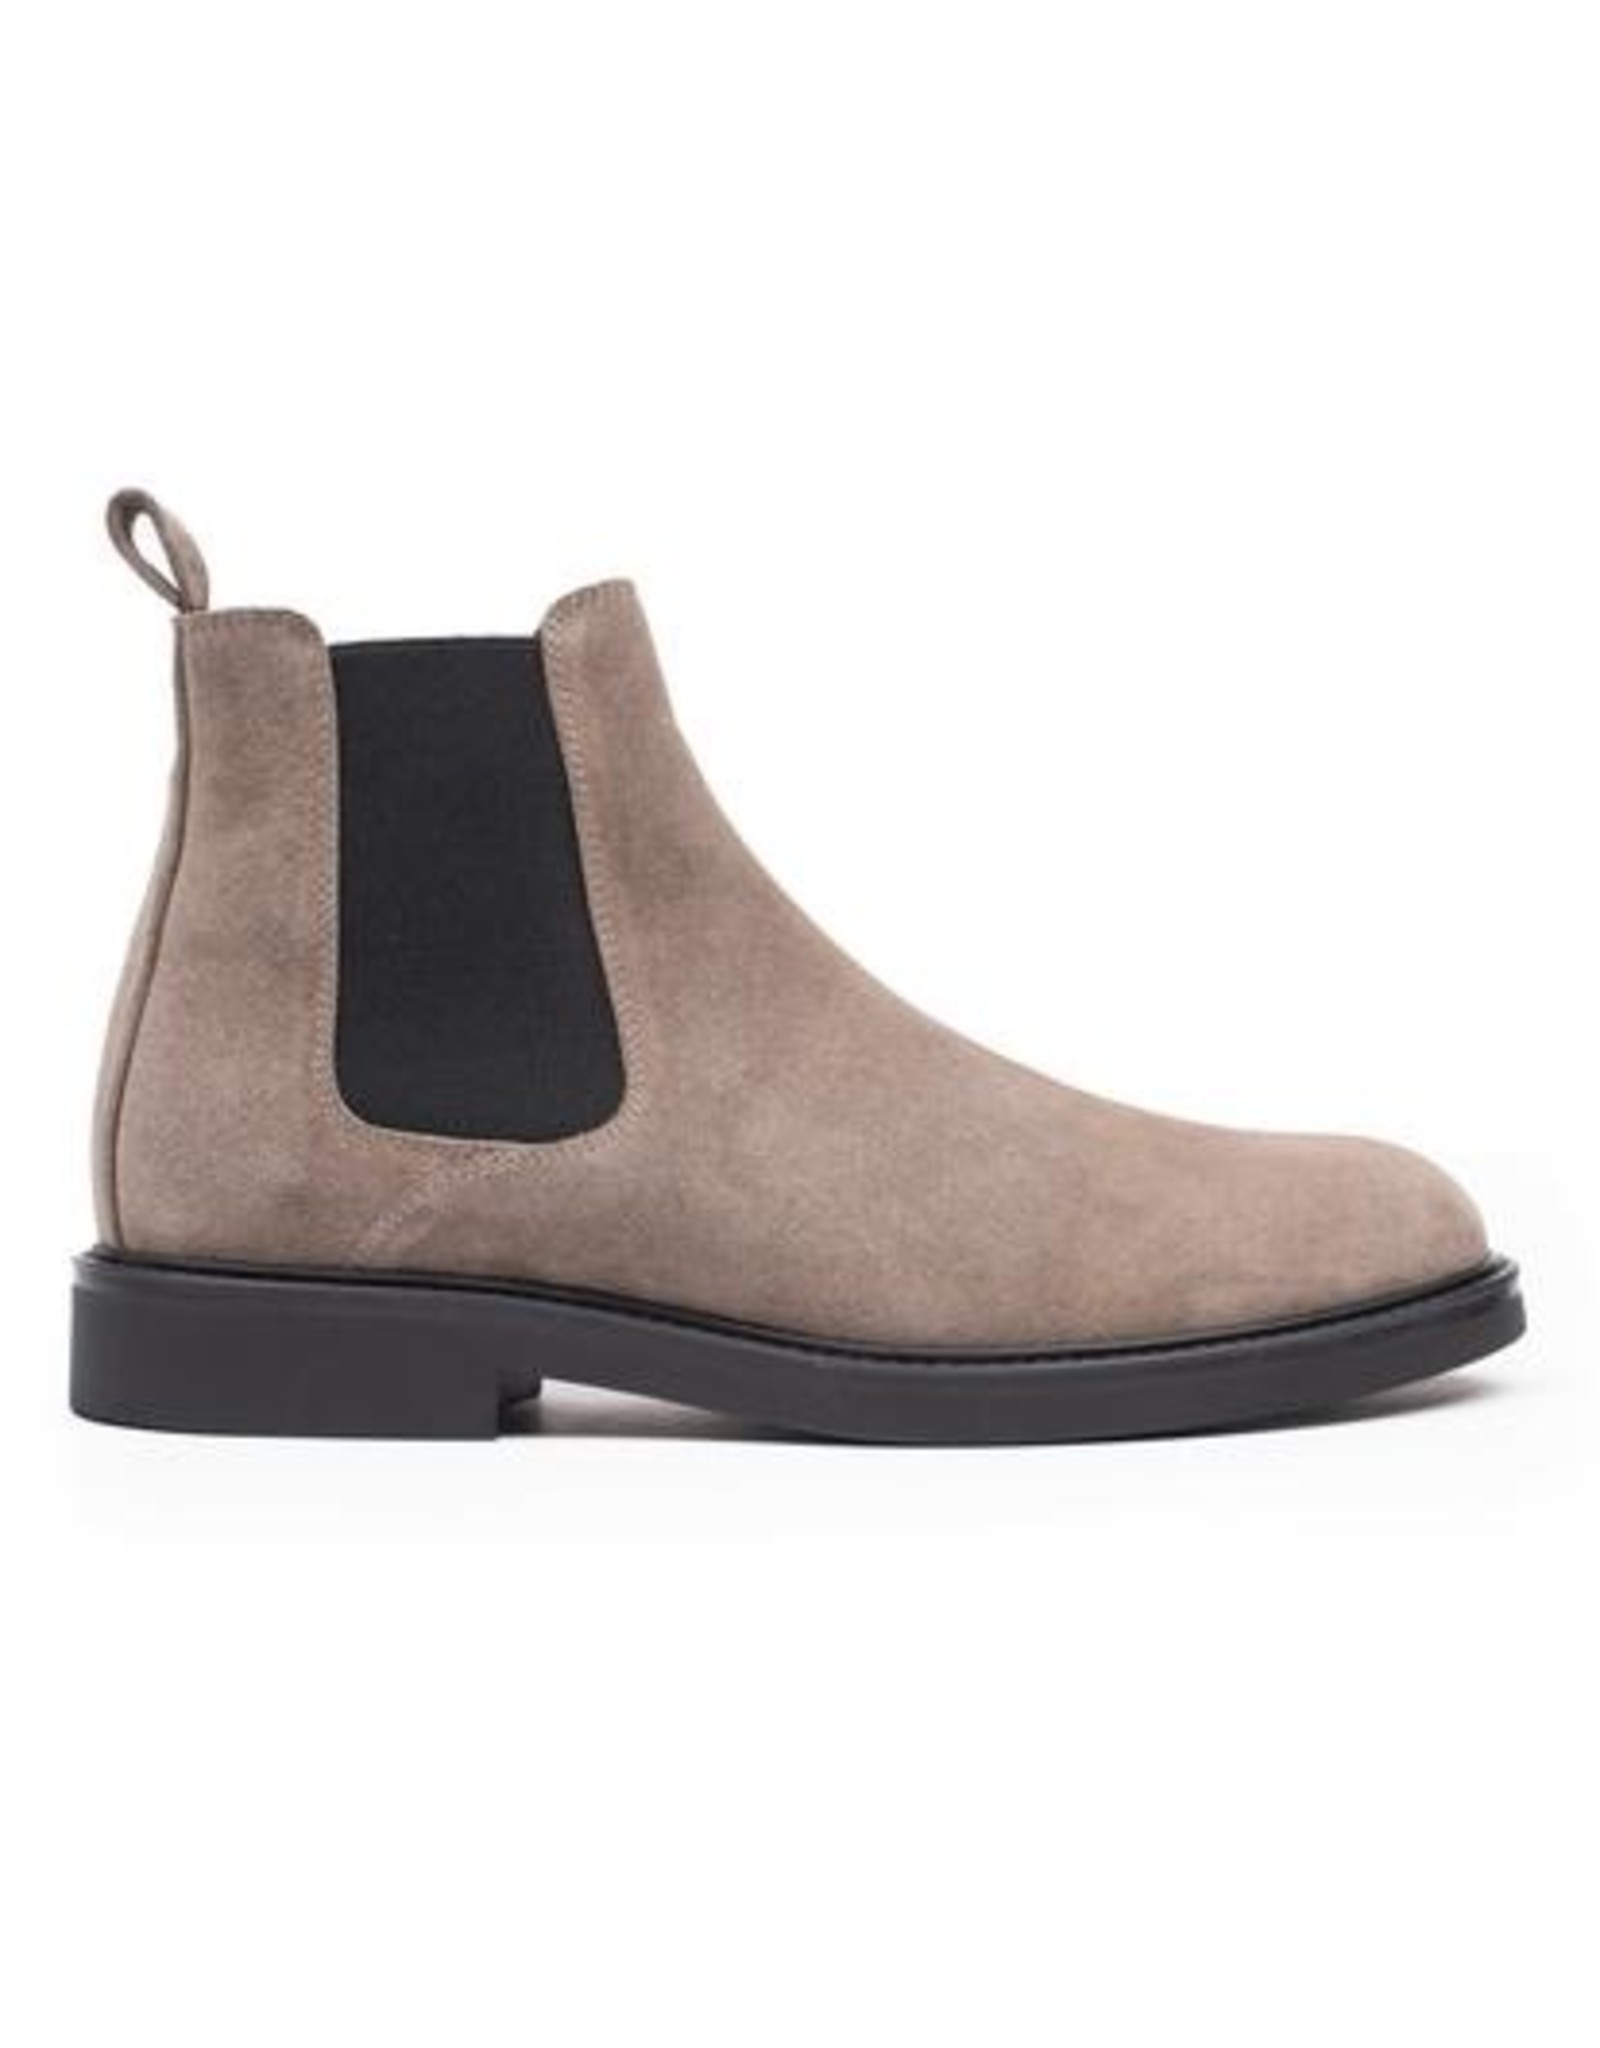 Hinson Chelsea grijs taupe